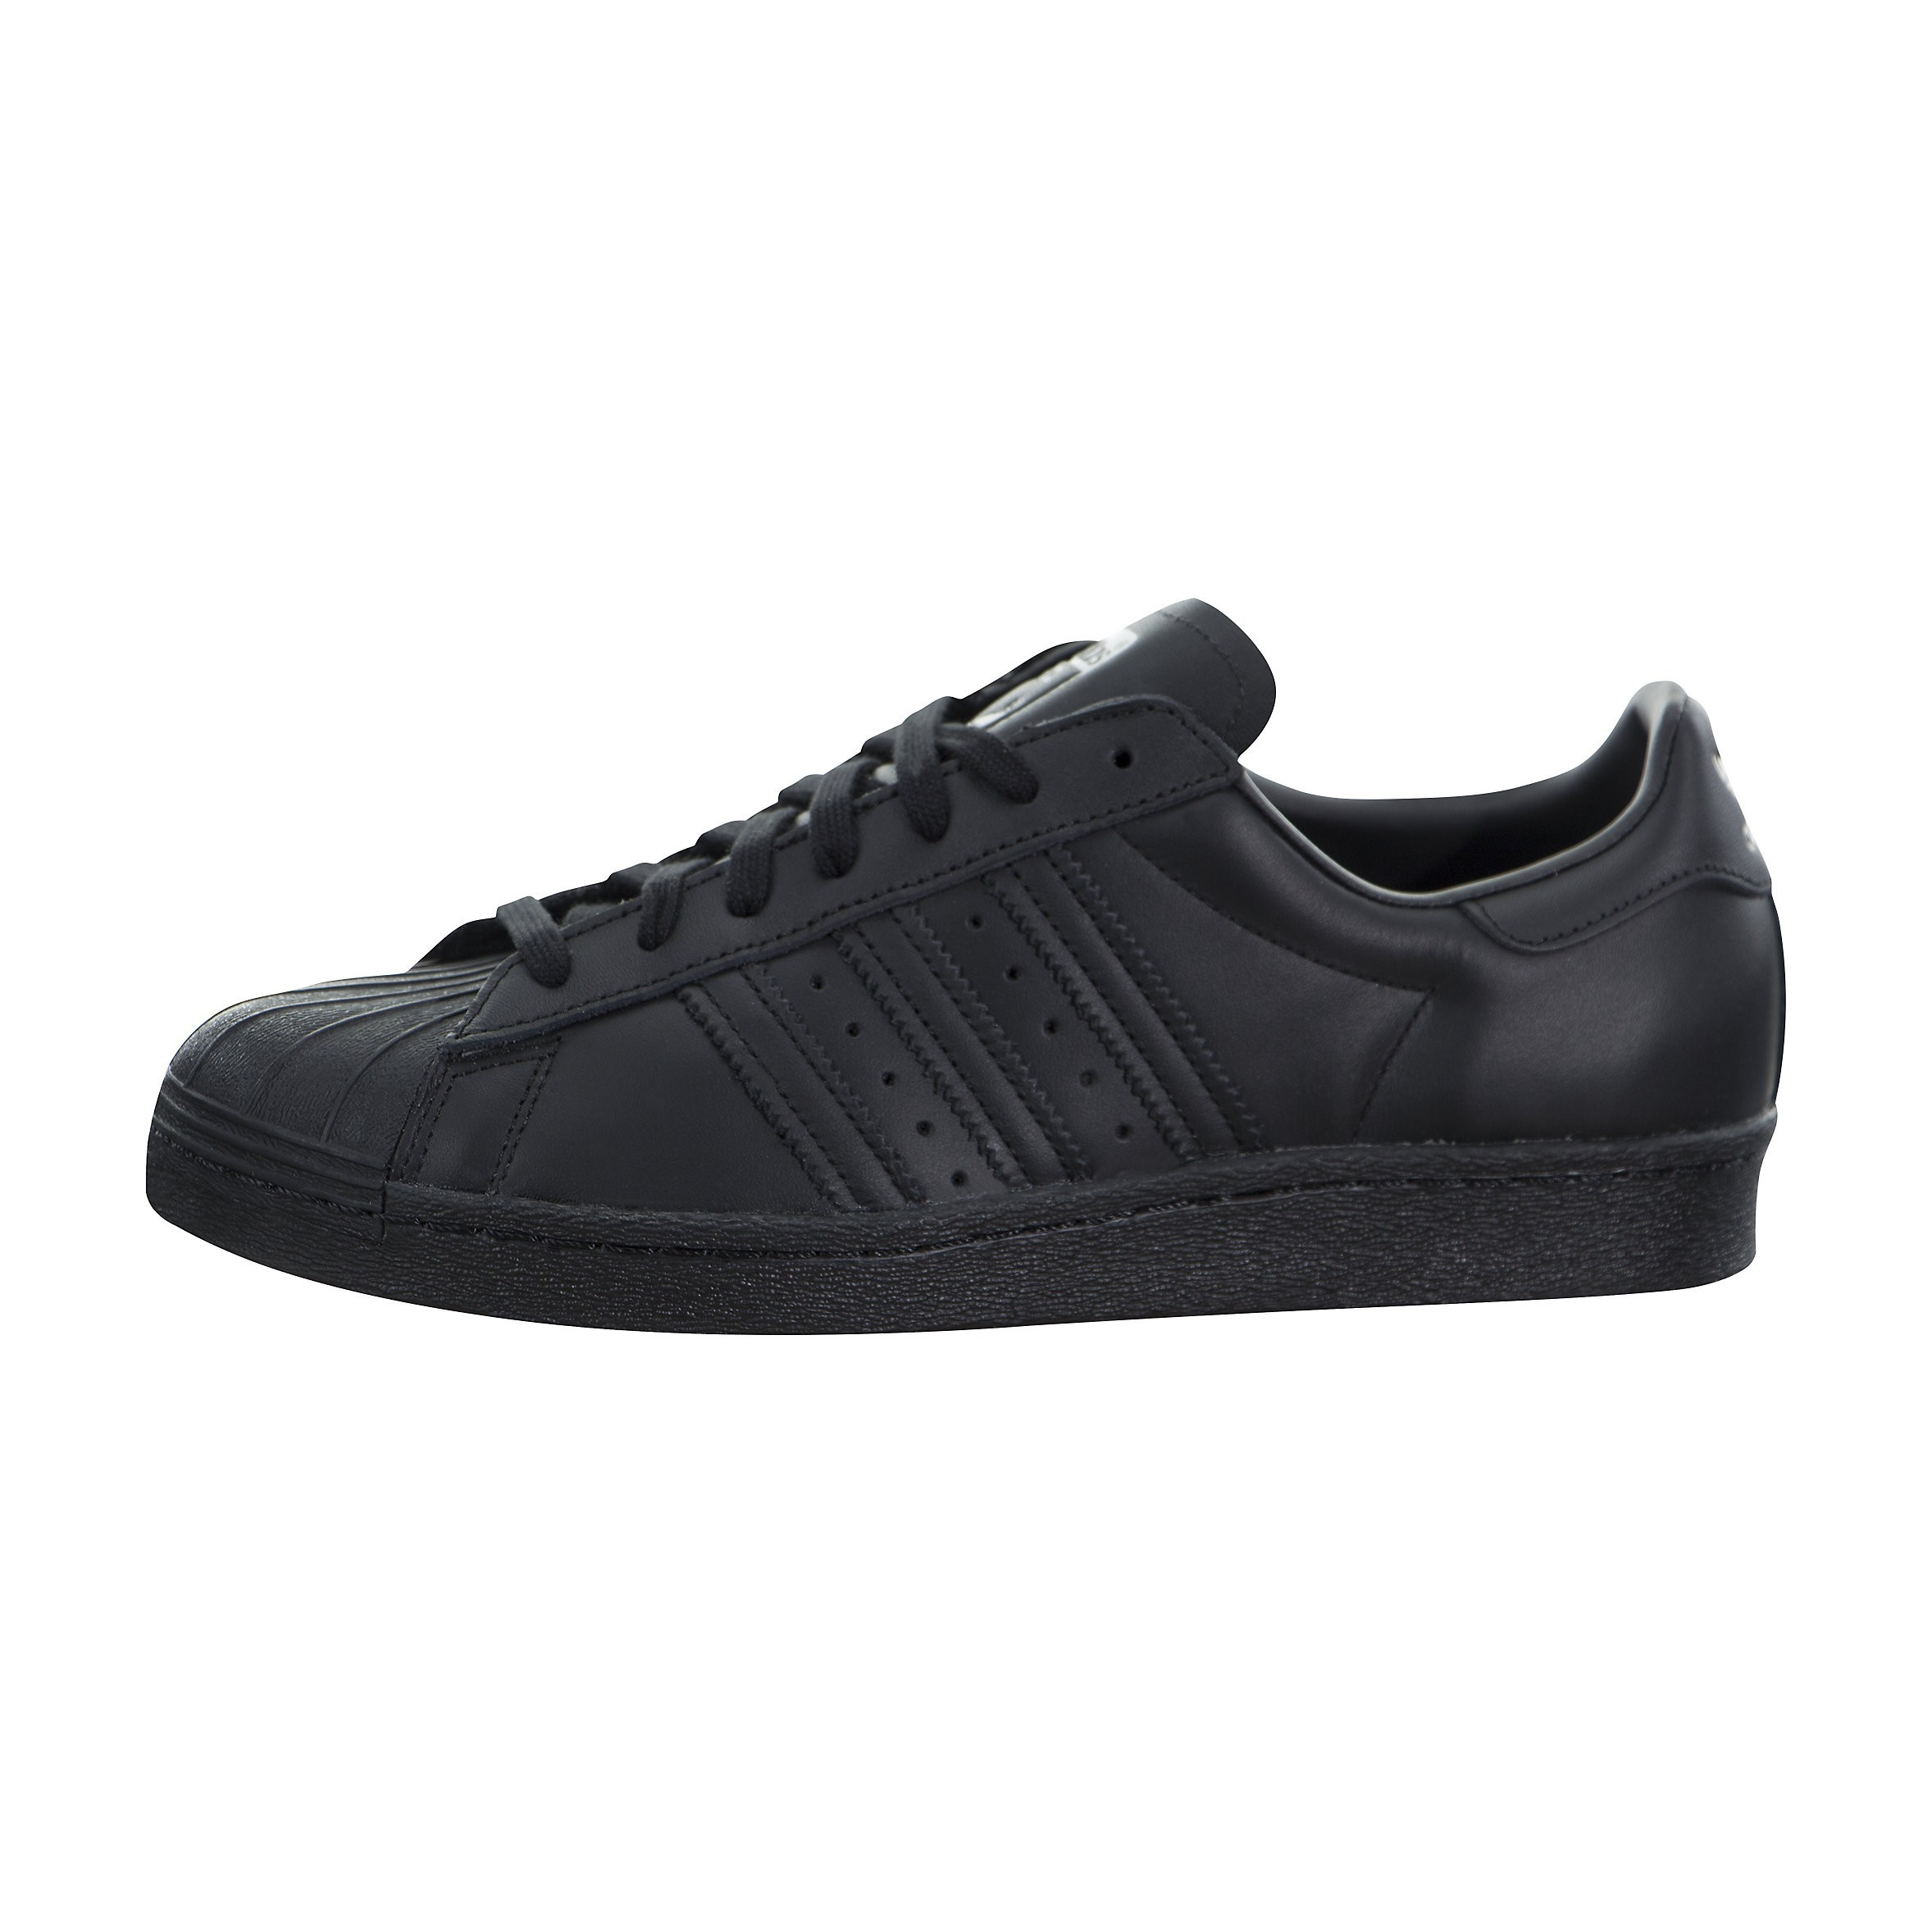 adidas Superstar 80s Leather Negras Hombre S79442